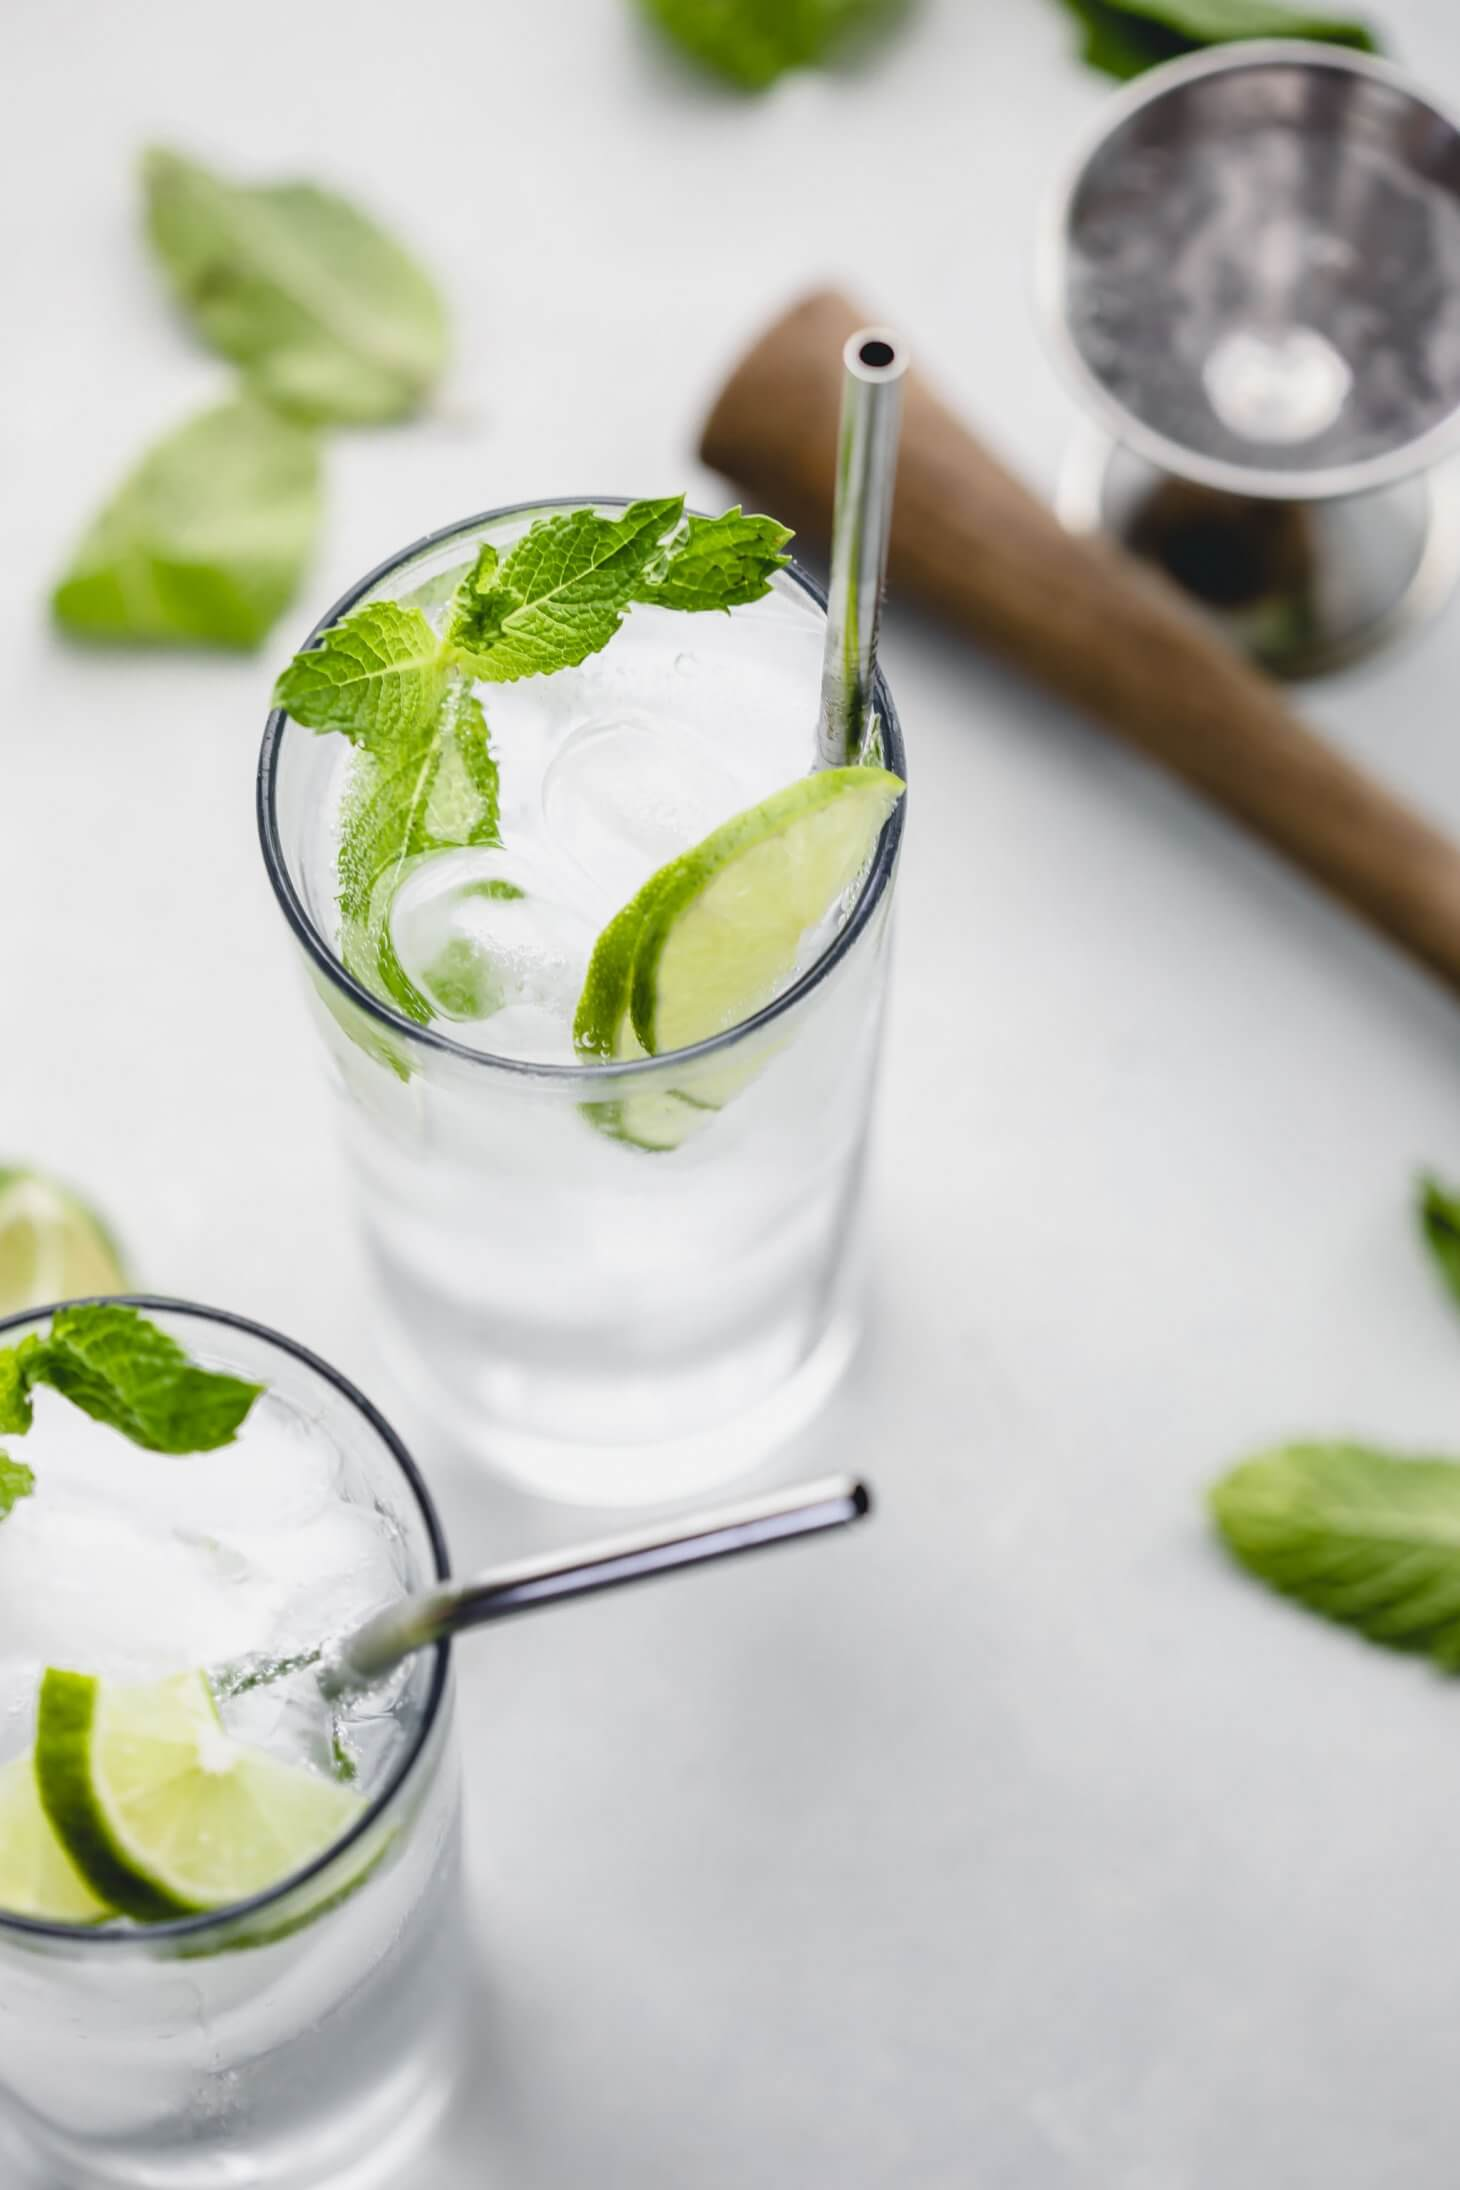 Overhead shot of mojito in glass.